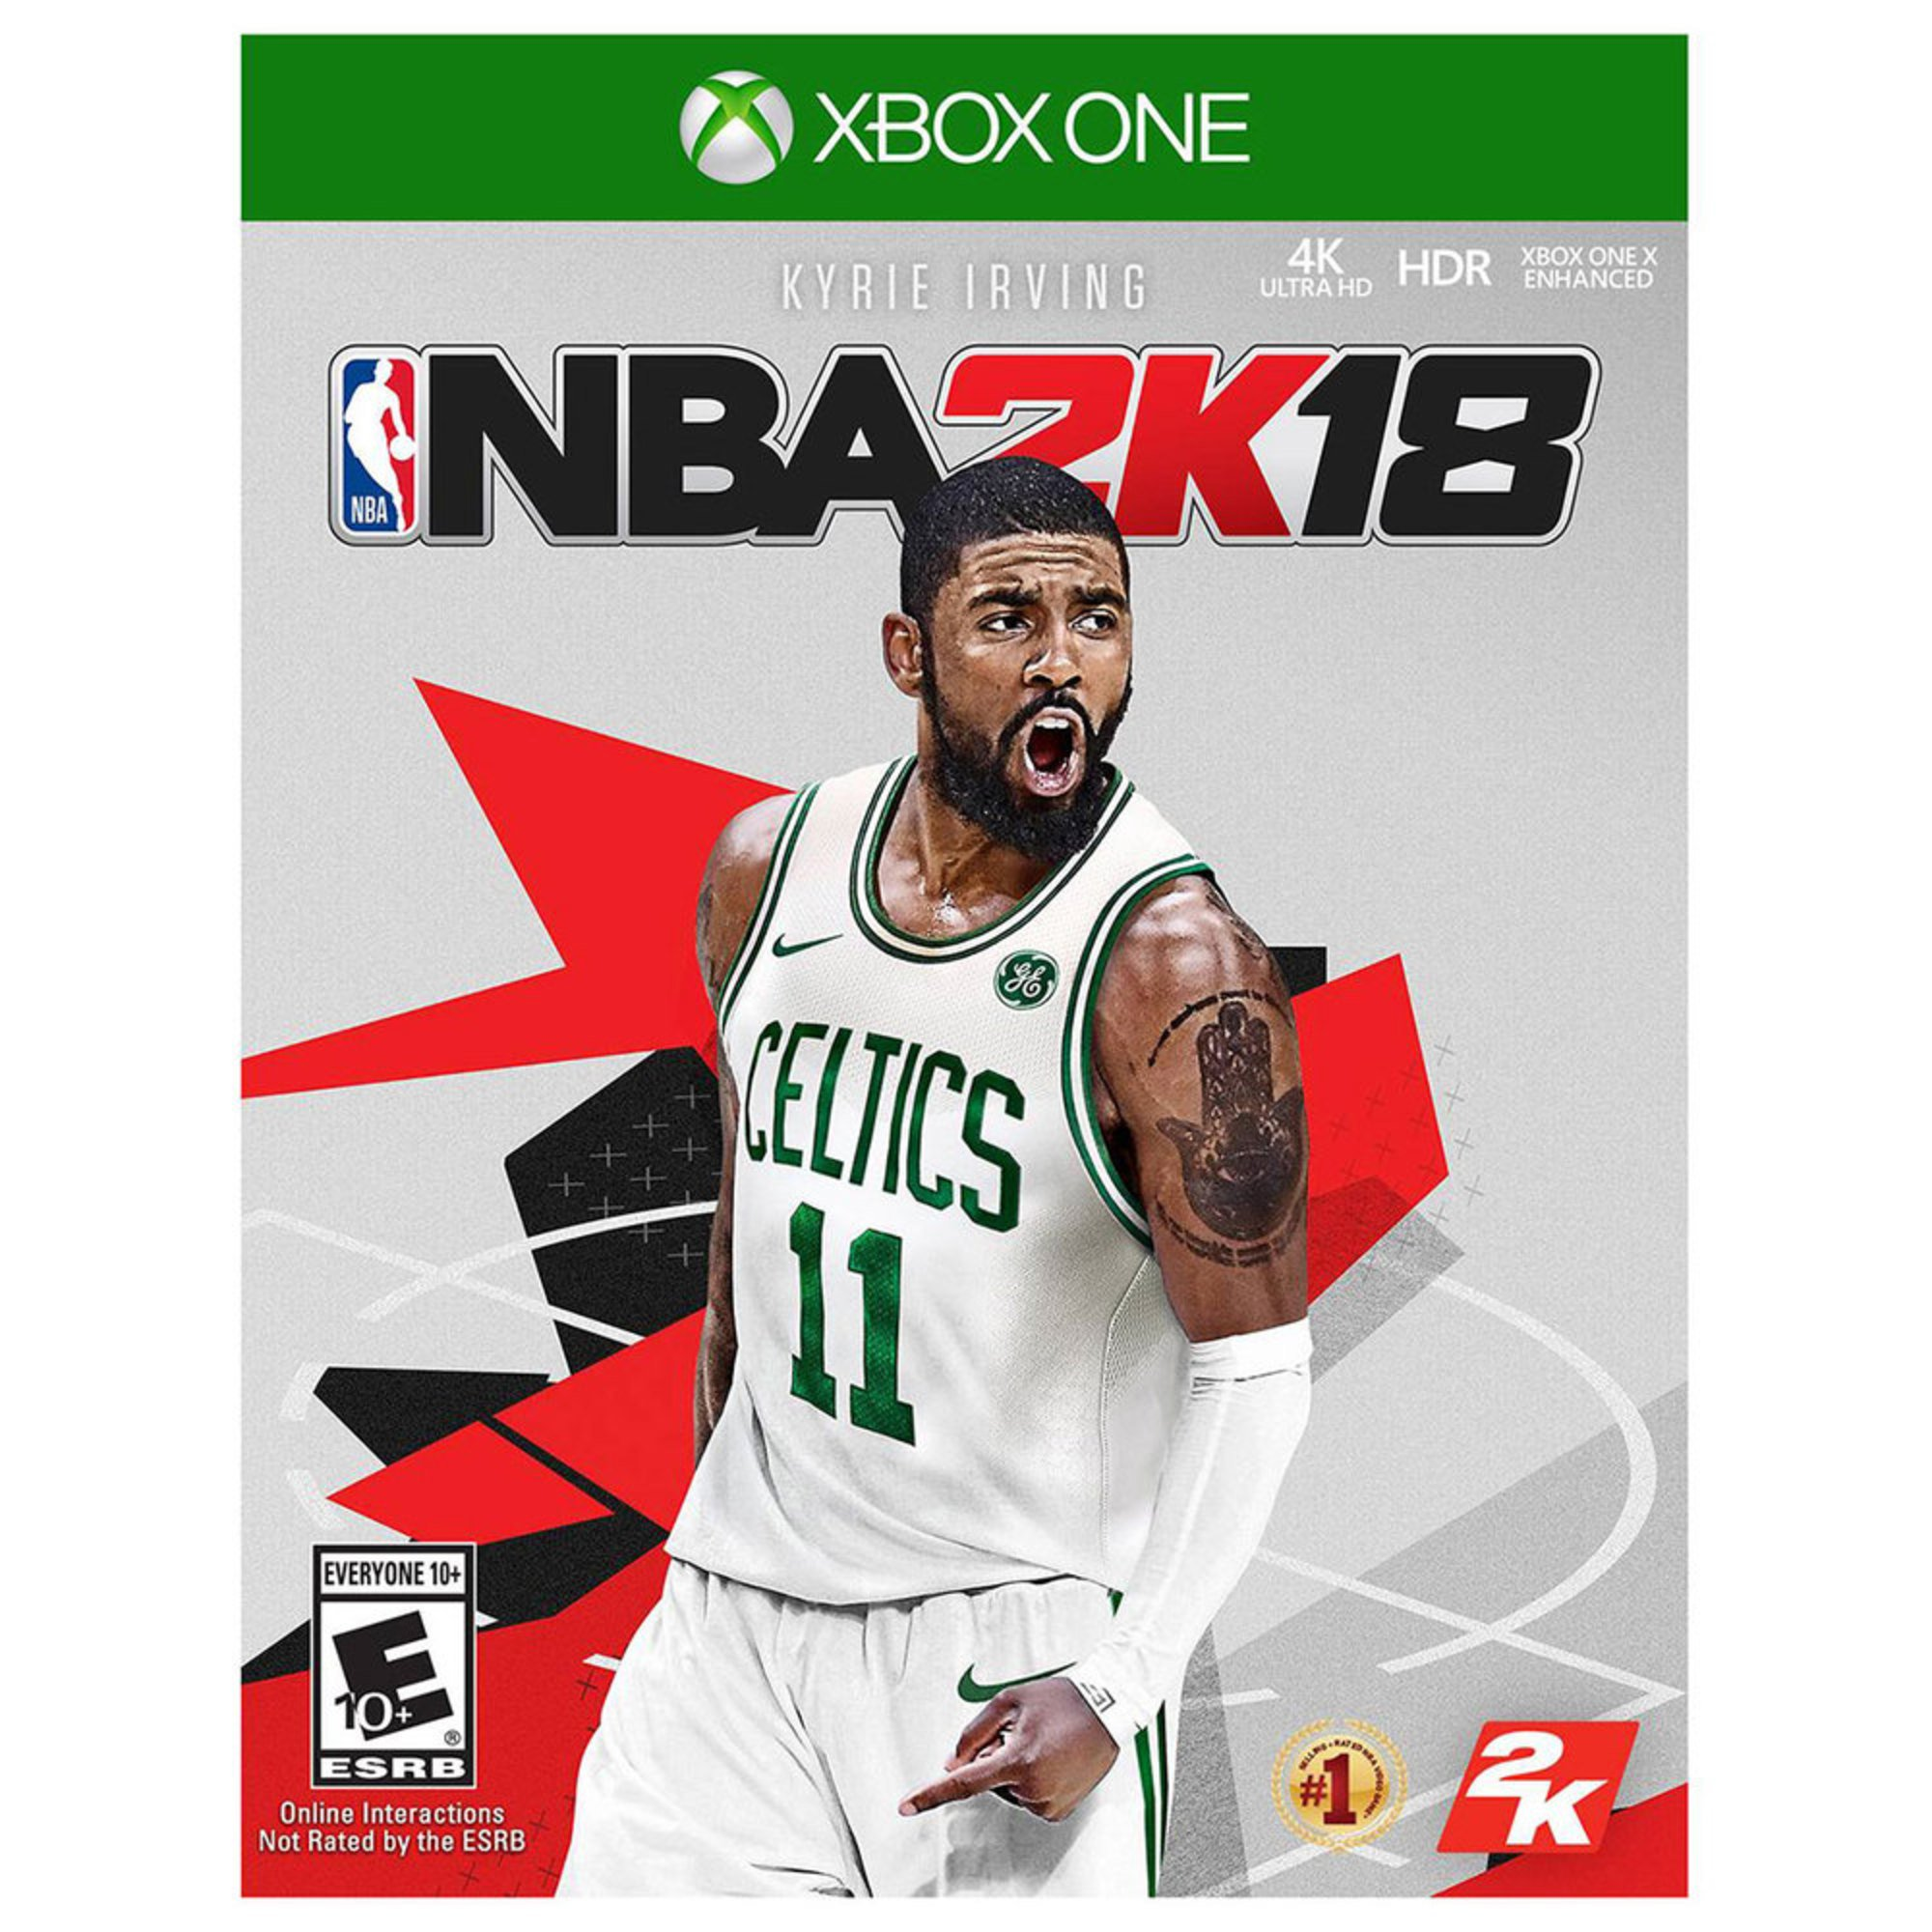 2K Games. Xbox One NBA 2K18. Product Rating 0 Based on 0 reviews